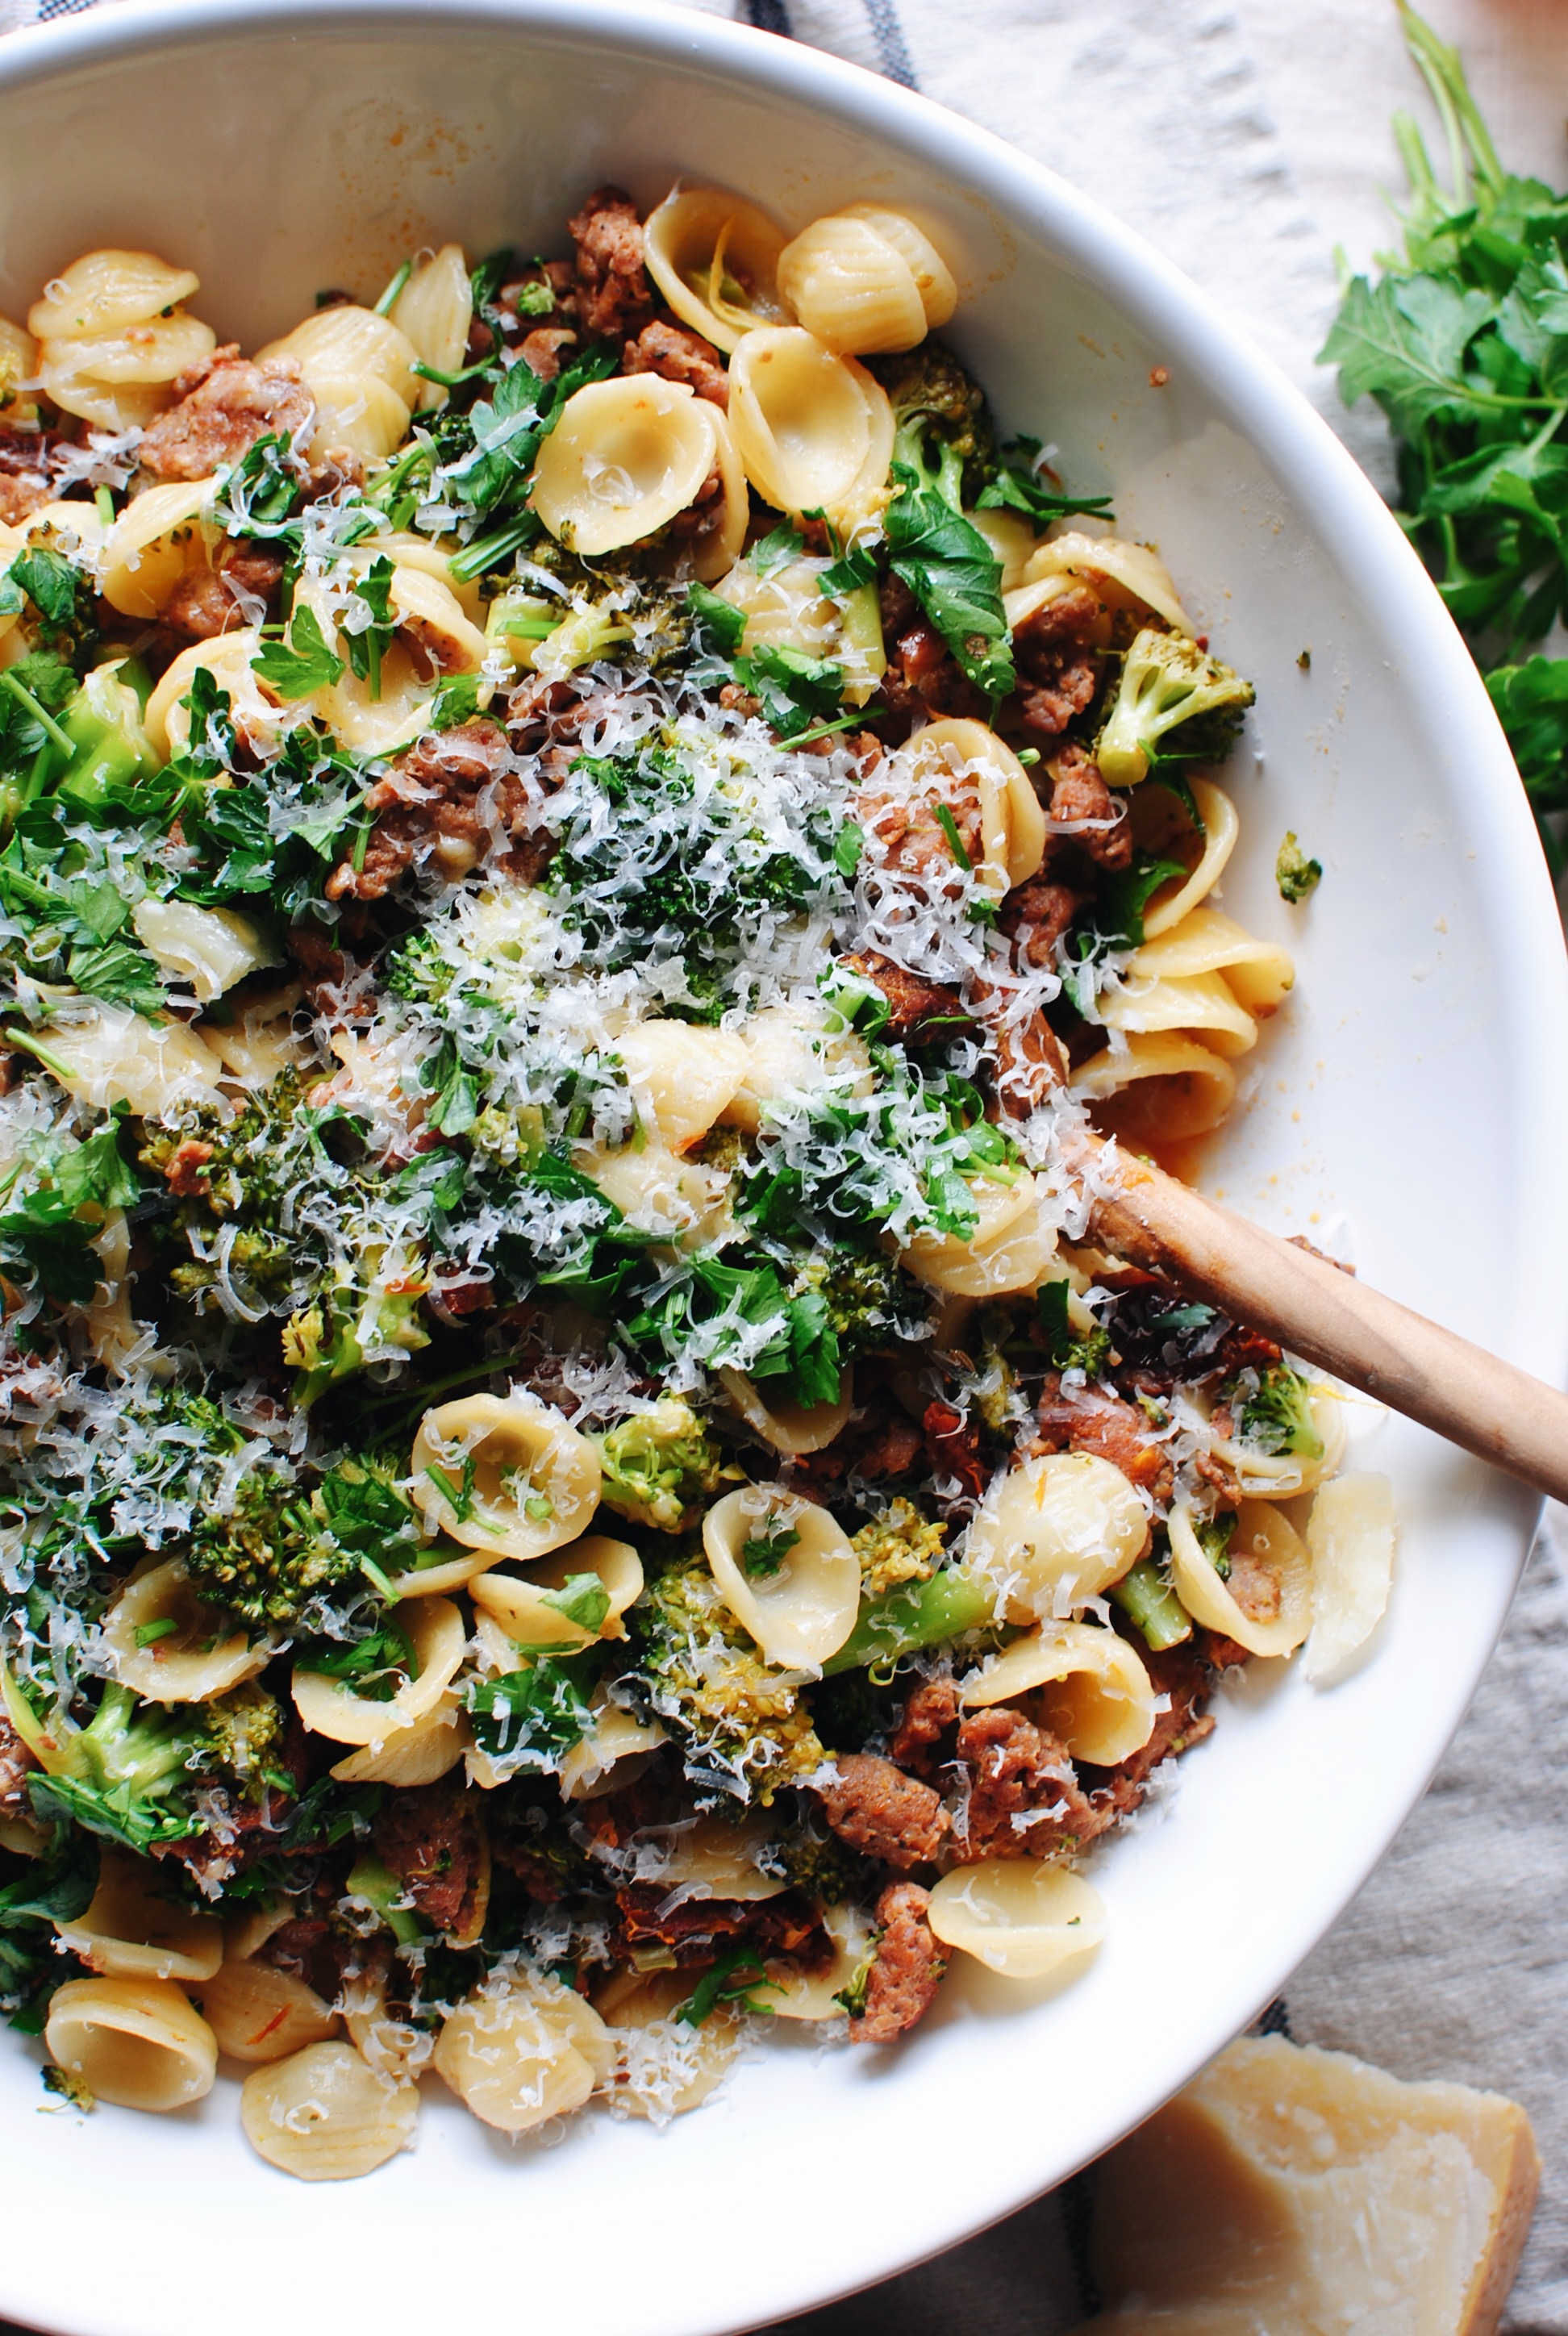 Orecchiette with Sausage, Sun-Dried Tomatoes and Broccoli / Bev Cooks